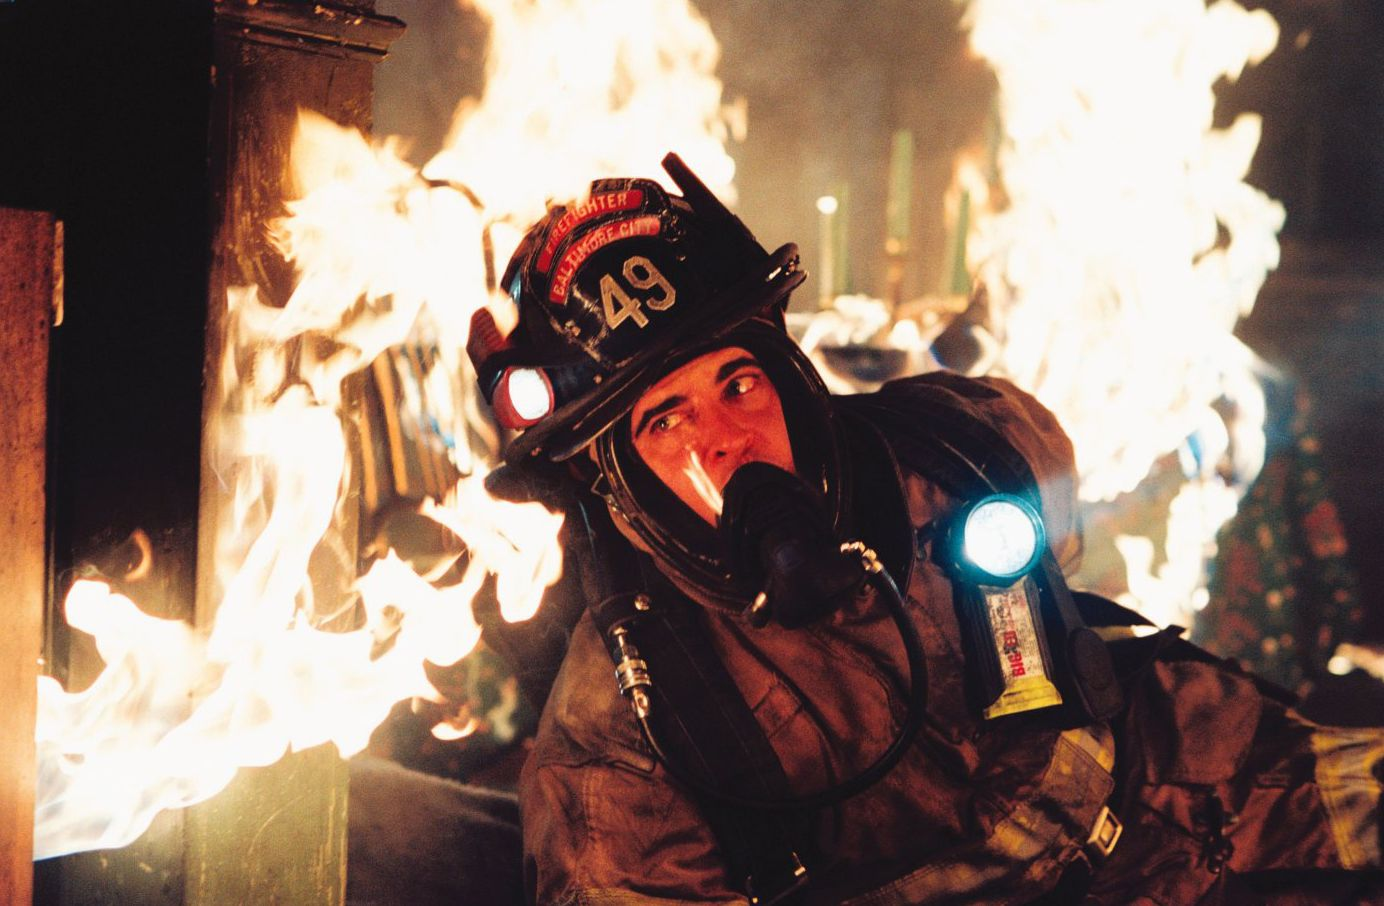 An image from Ladder 49